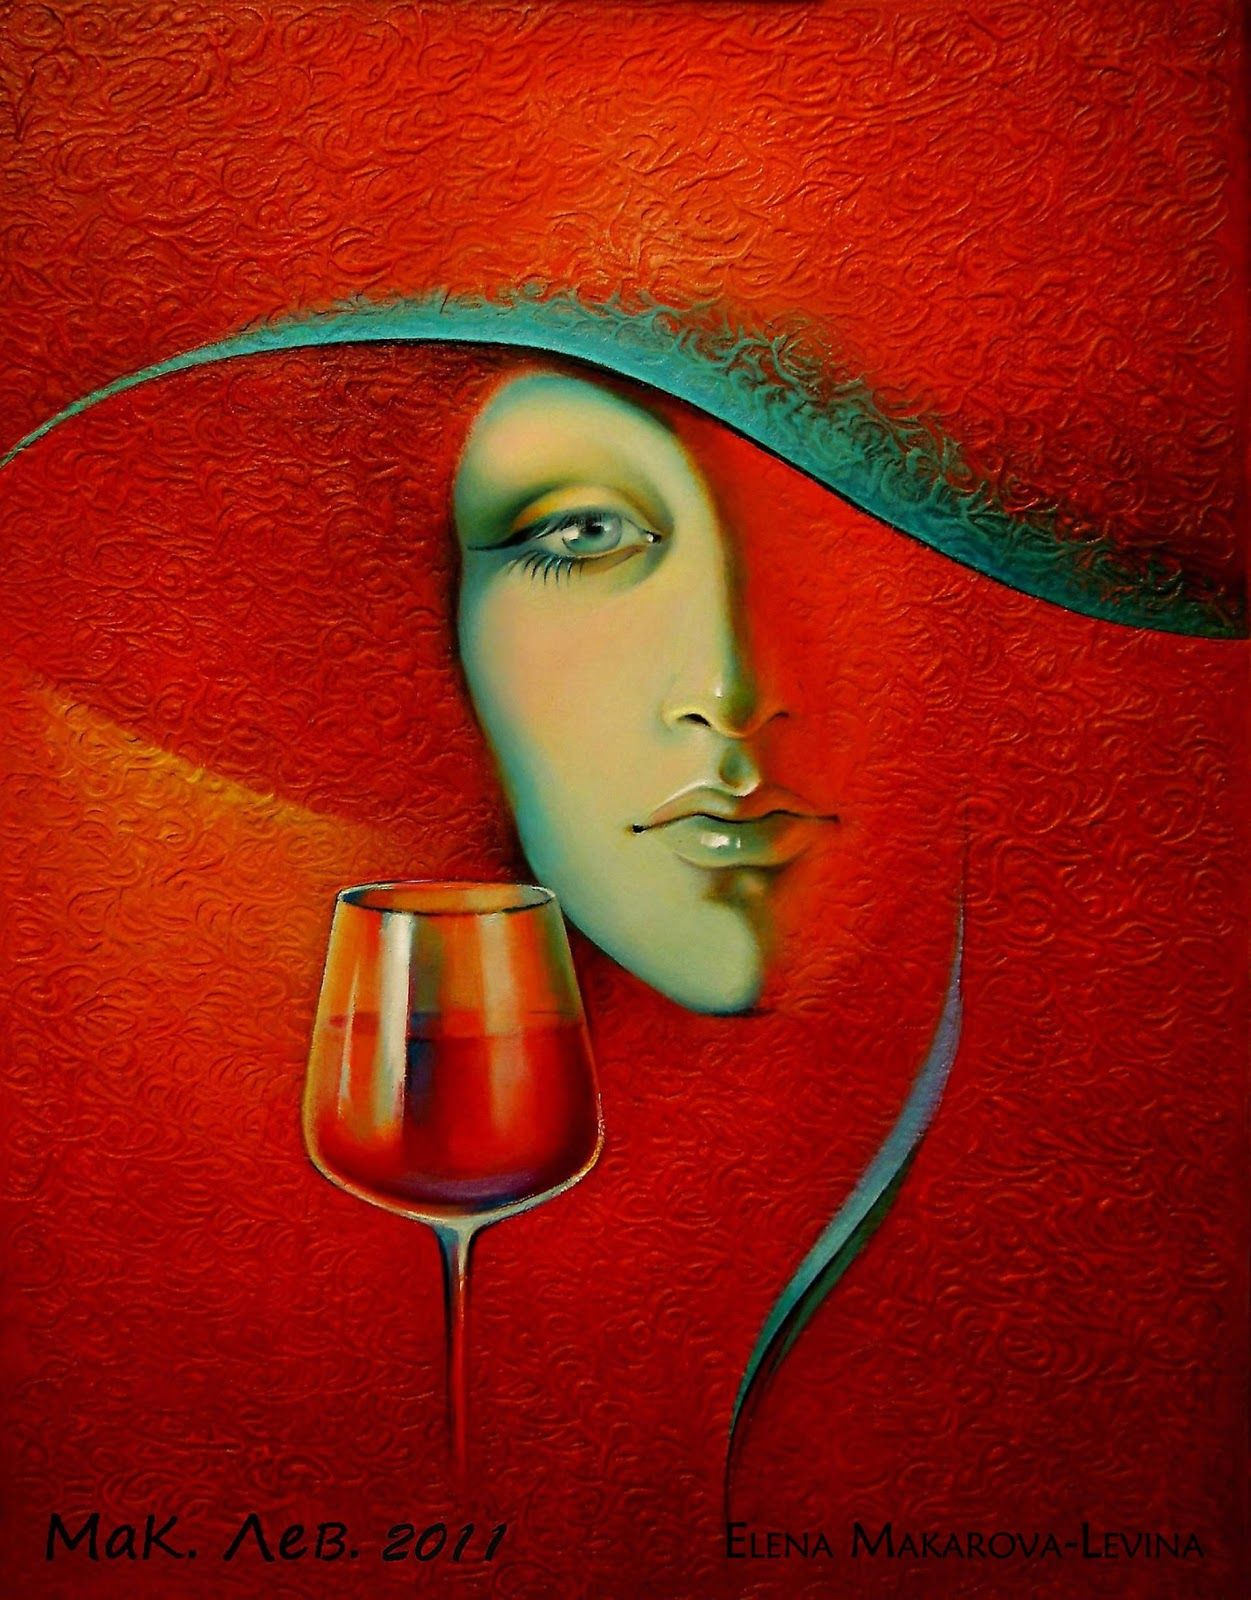 Alena Makarova Levina 1963 Figurative Painter Art Wine Art Beauty Landscapes